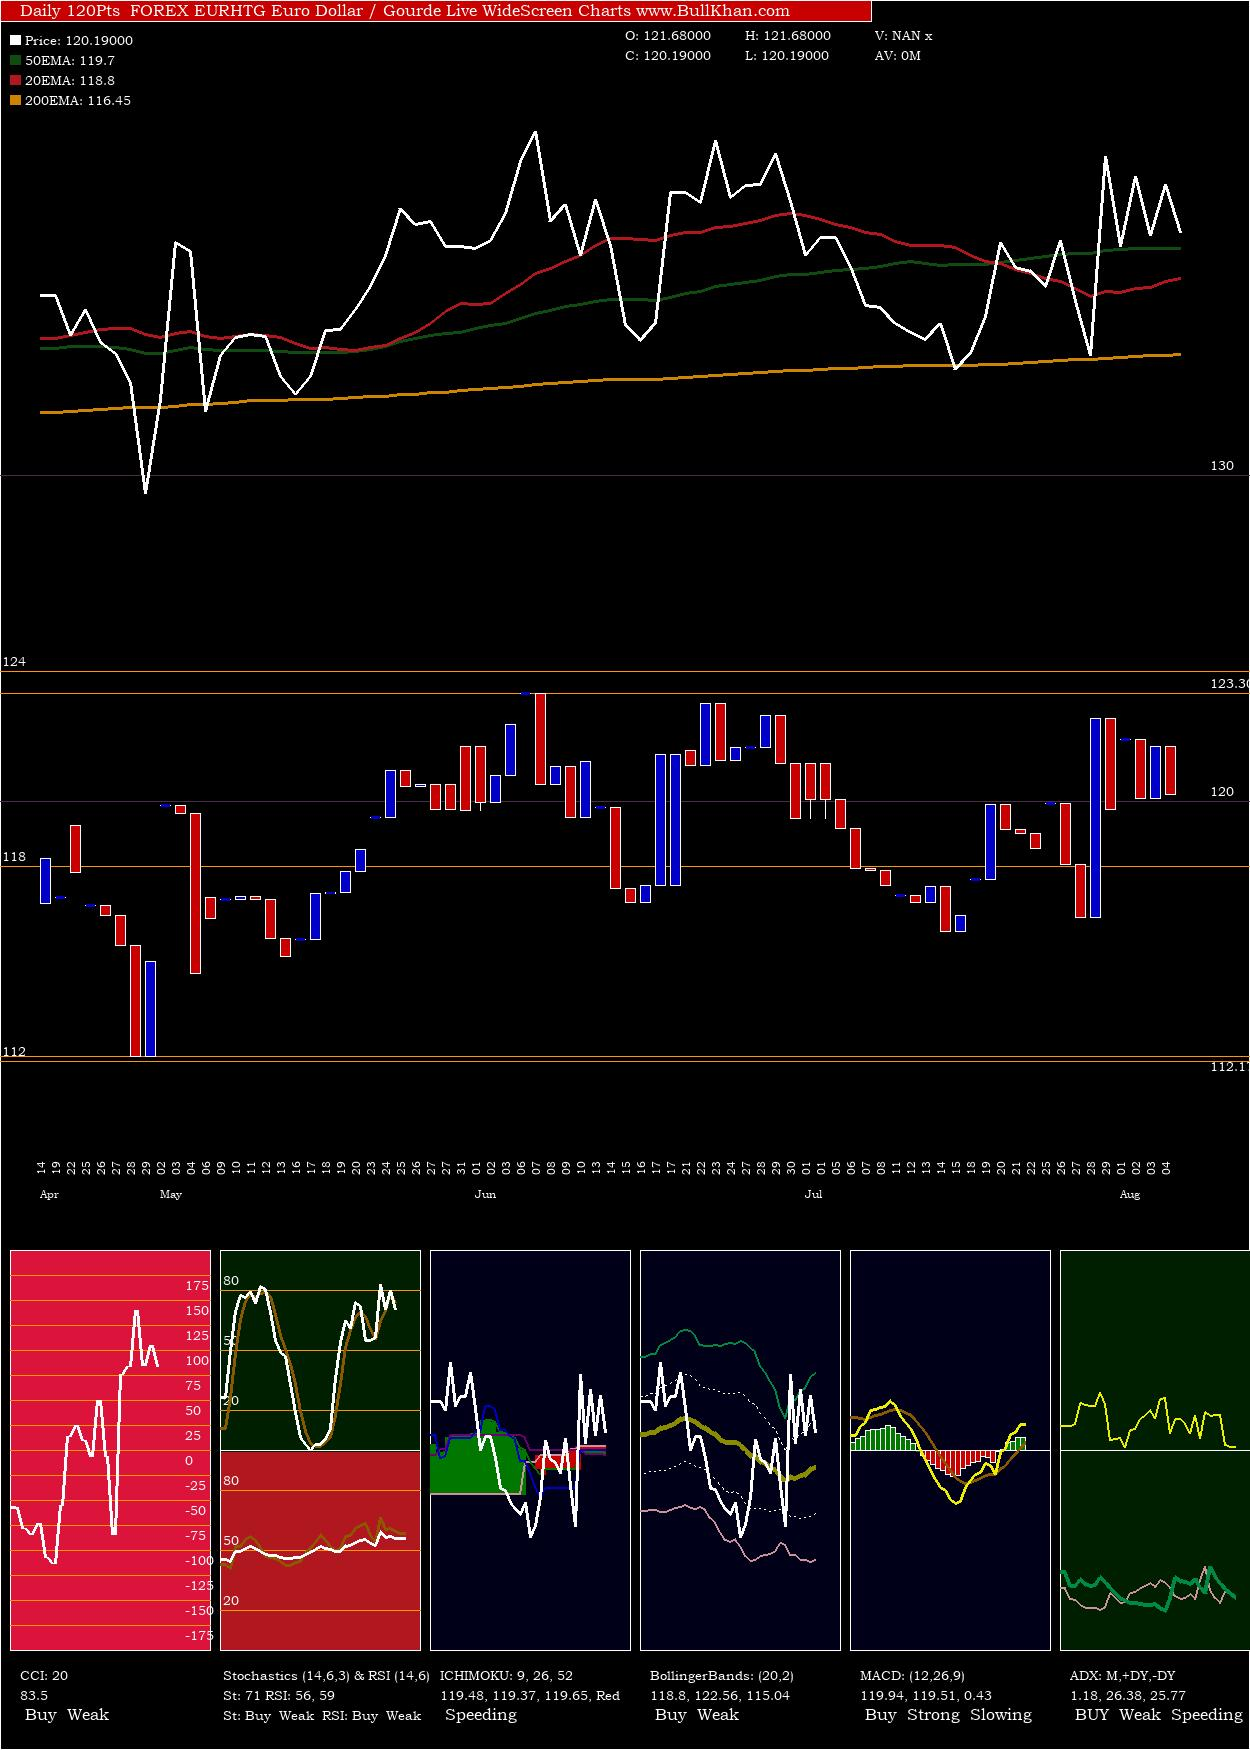 Euro Dollar / Gourde charts and indicators